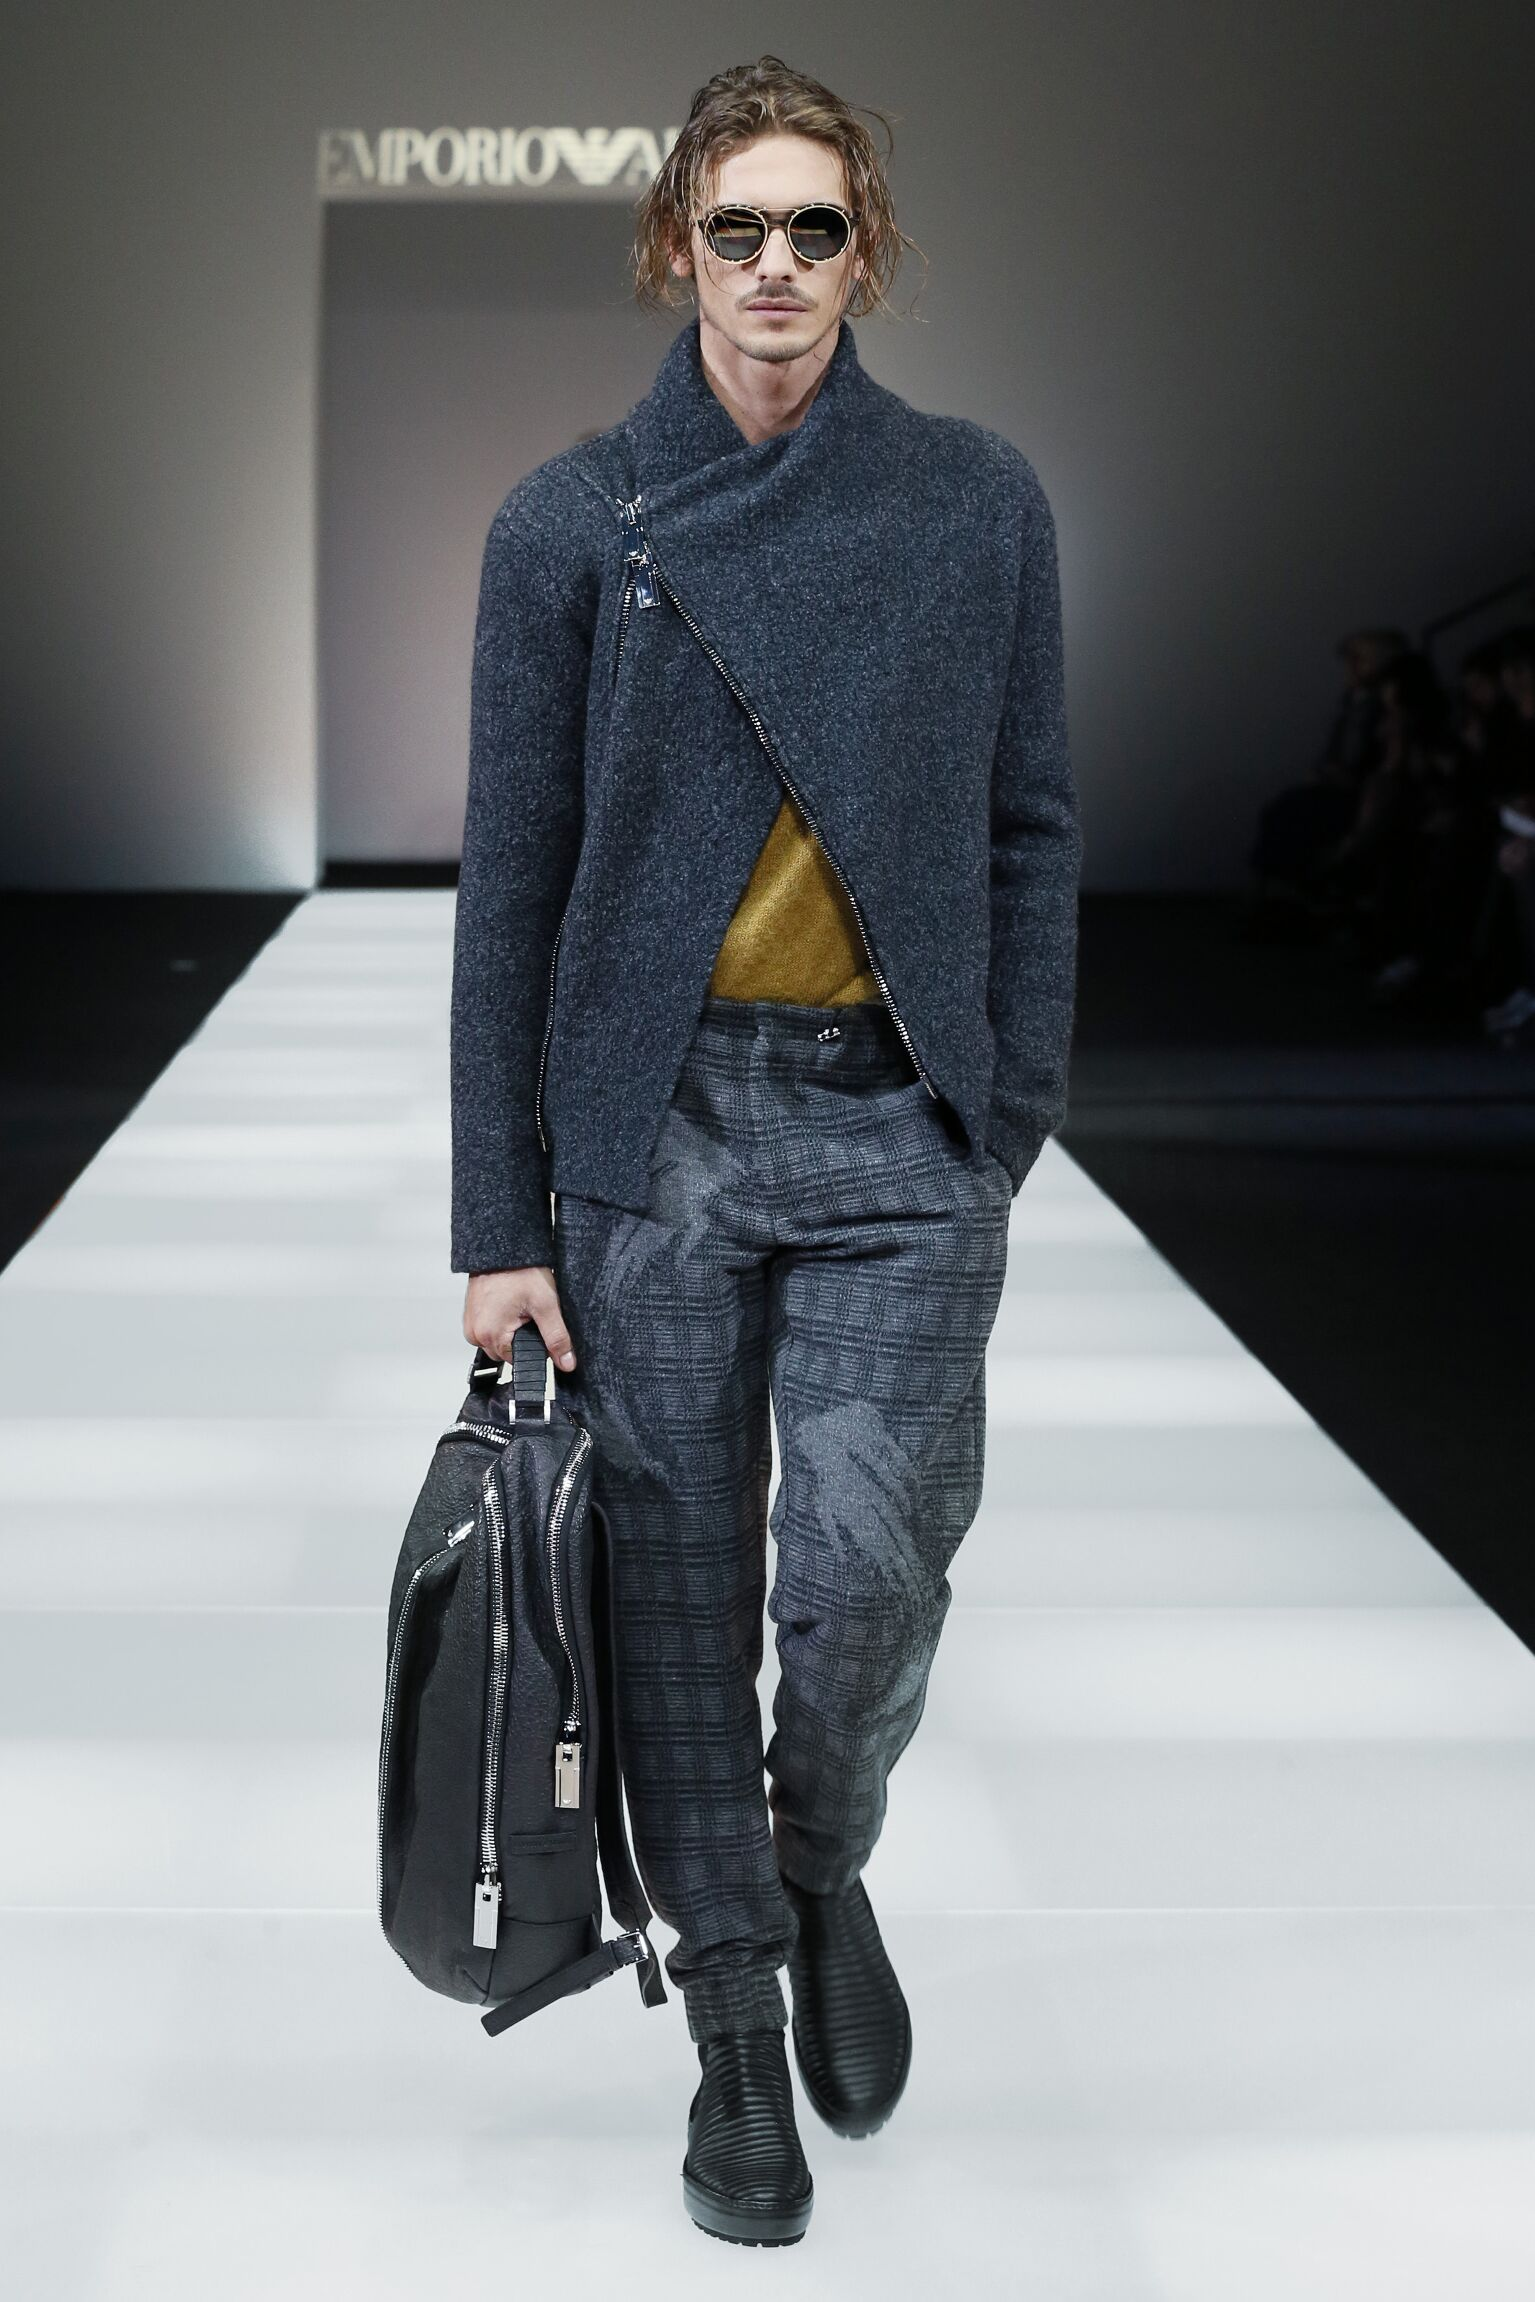 Emporio Armani Men's Collection 2015 2016